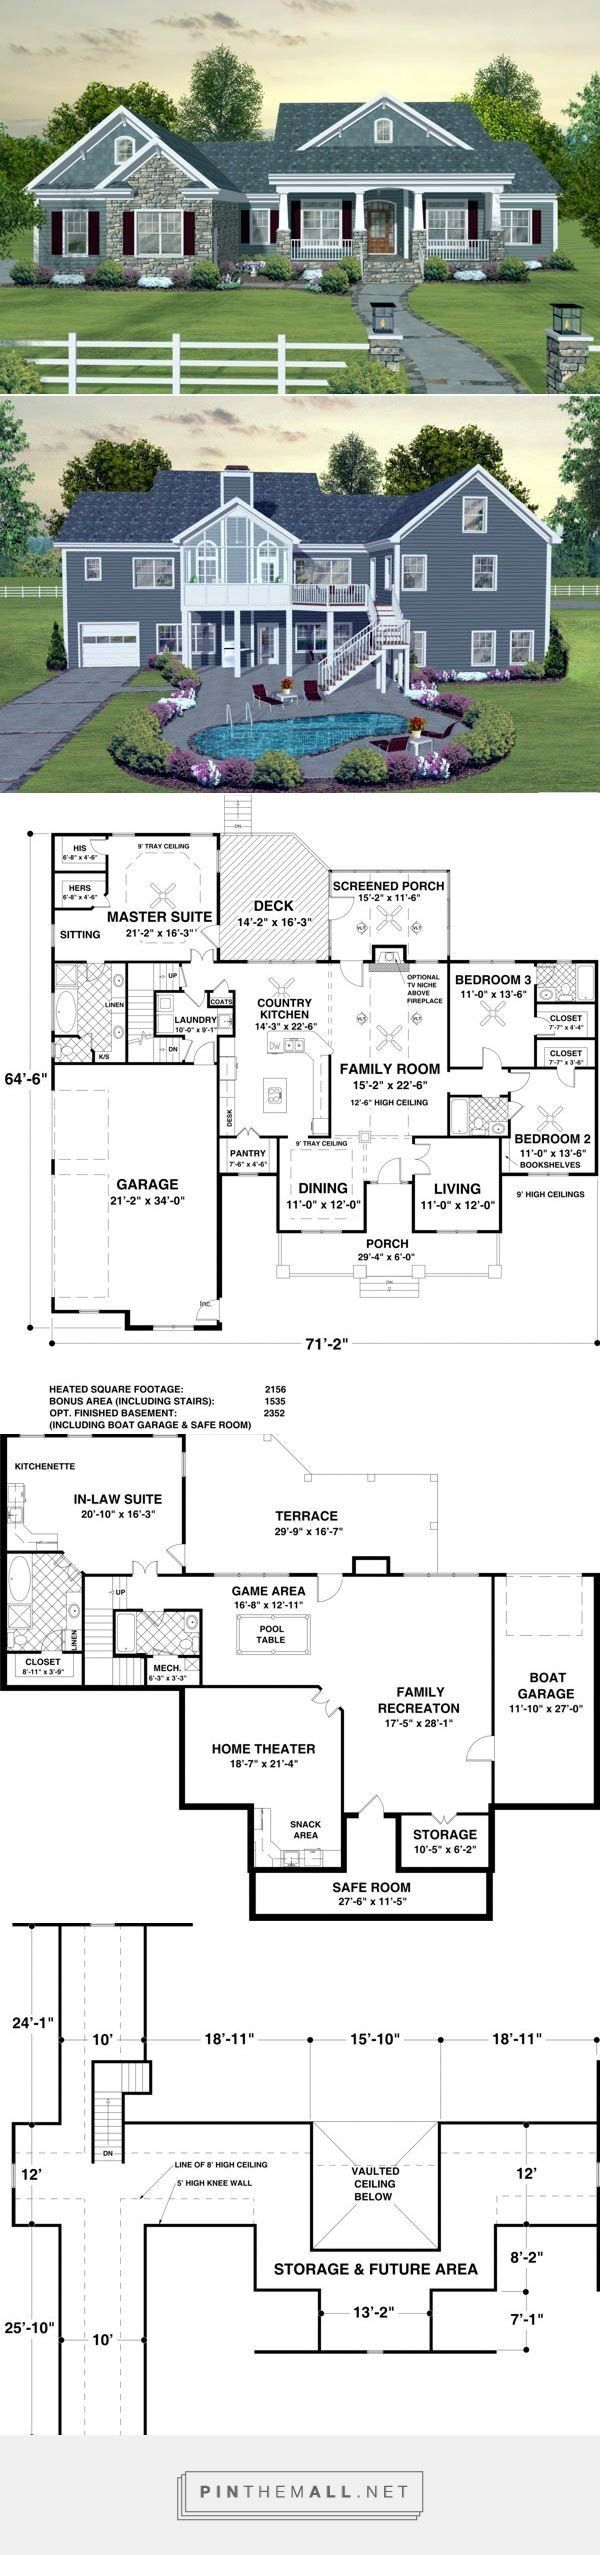 dazzling ideas finished basement floor plans. 55 best Floor Plans images on Pinterest  Architecture Arquitetura and Apartments